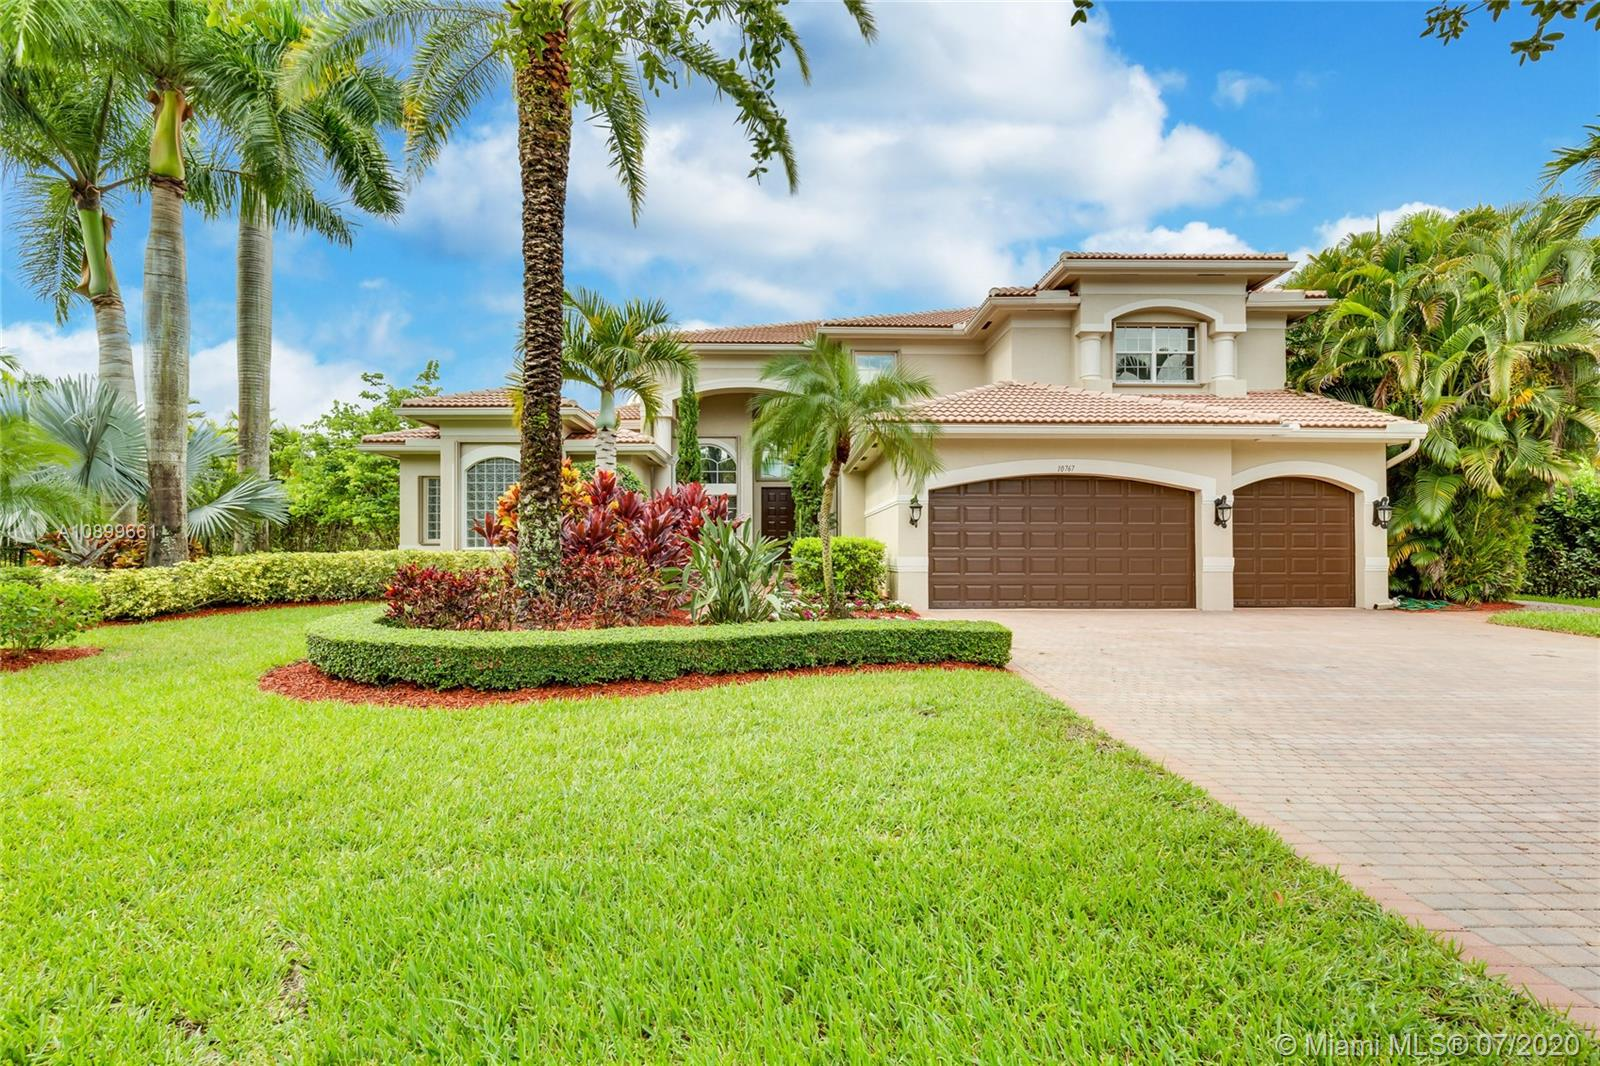 Long Lake Ranches - 10767 Garden Ridge Ct, Davie, FL 33328